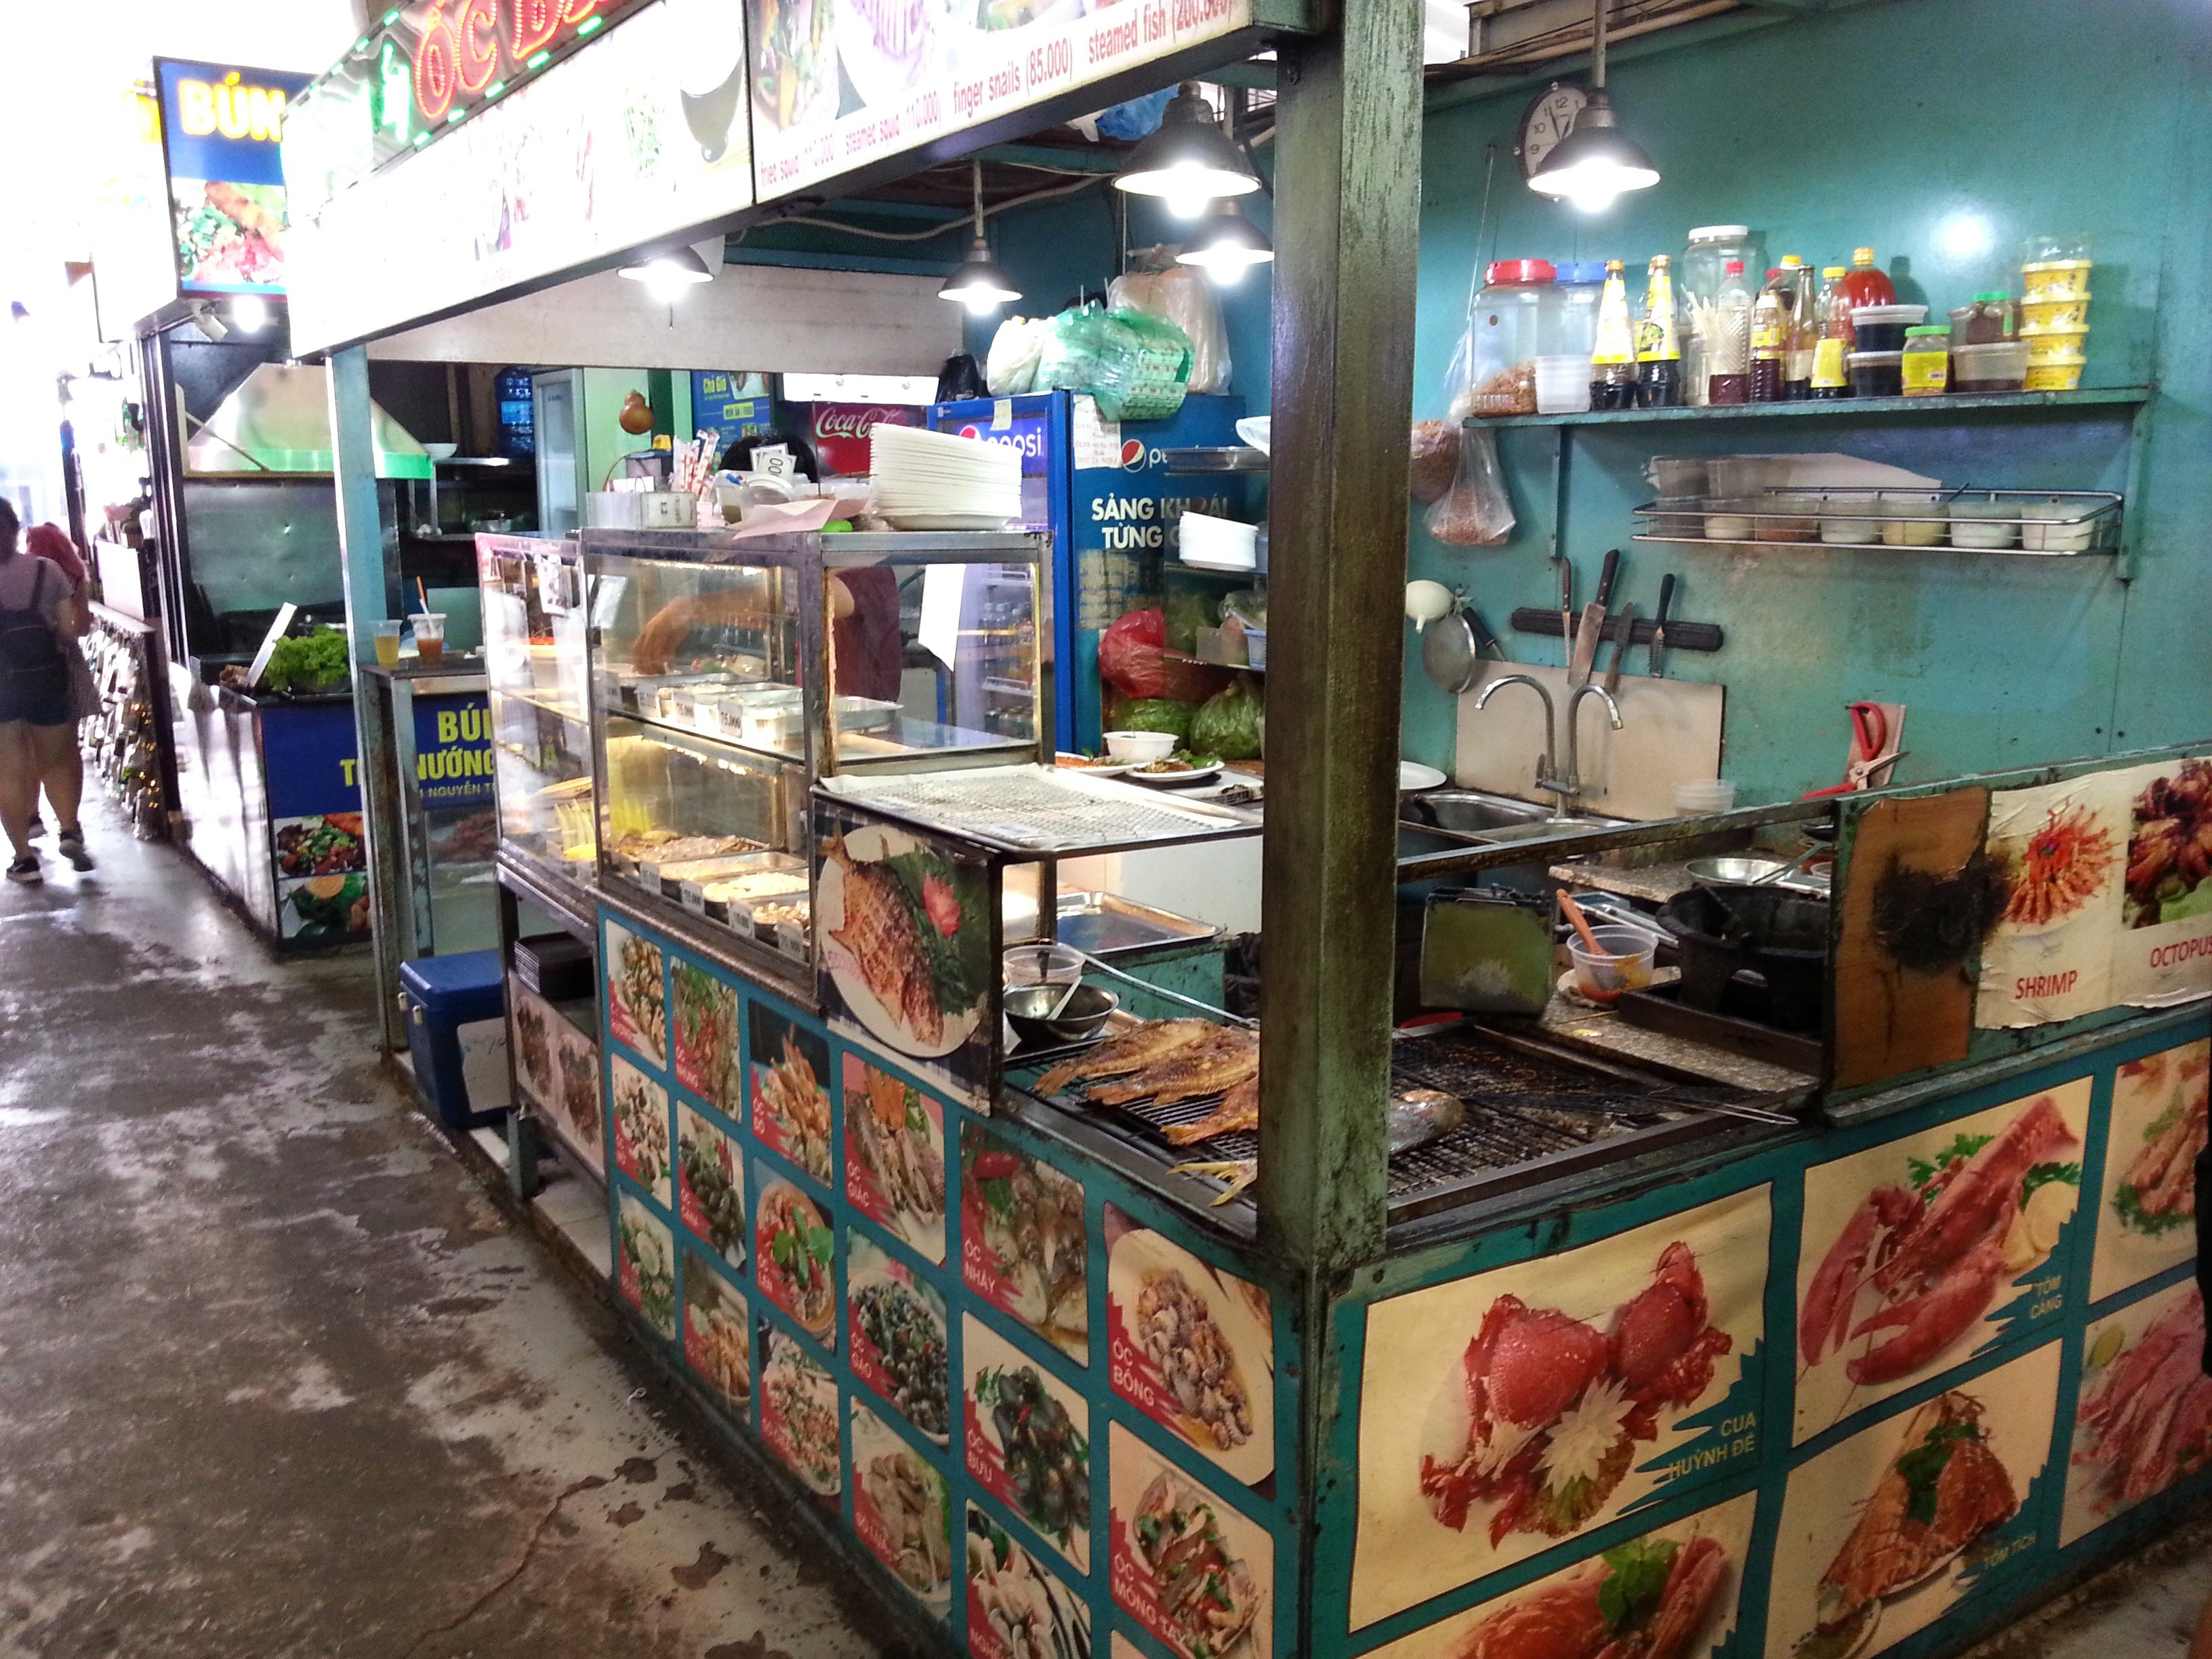 Seafood stall at Ben Thanh Street Food Market